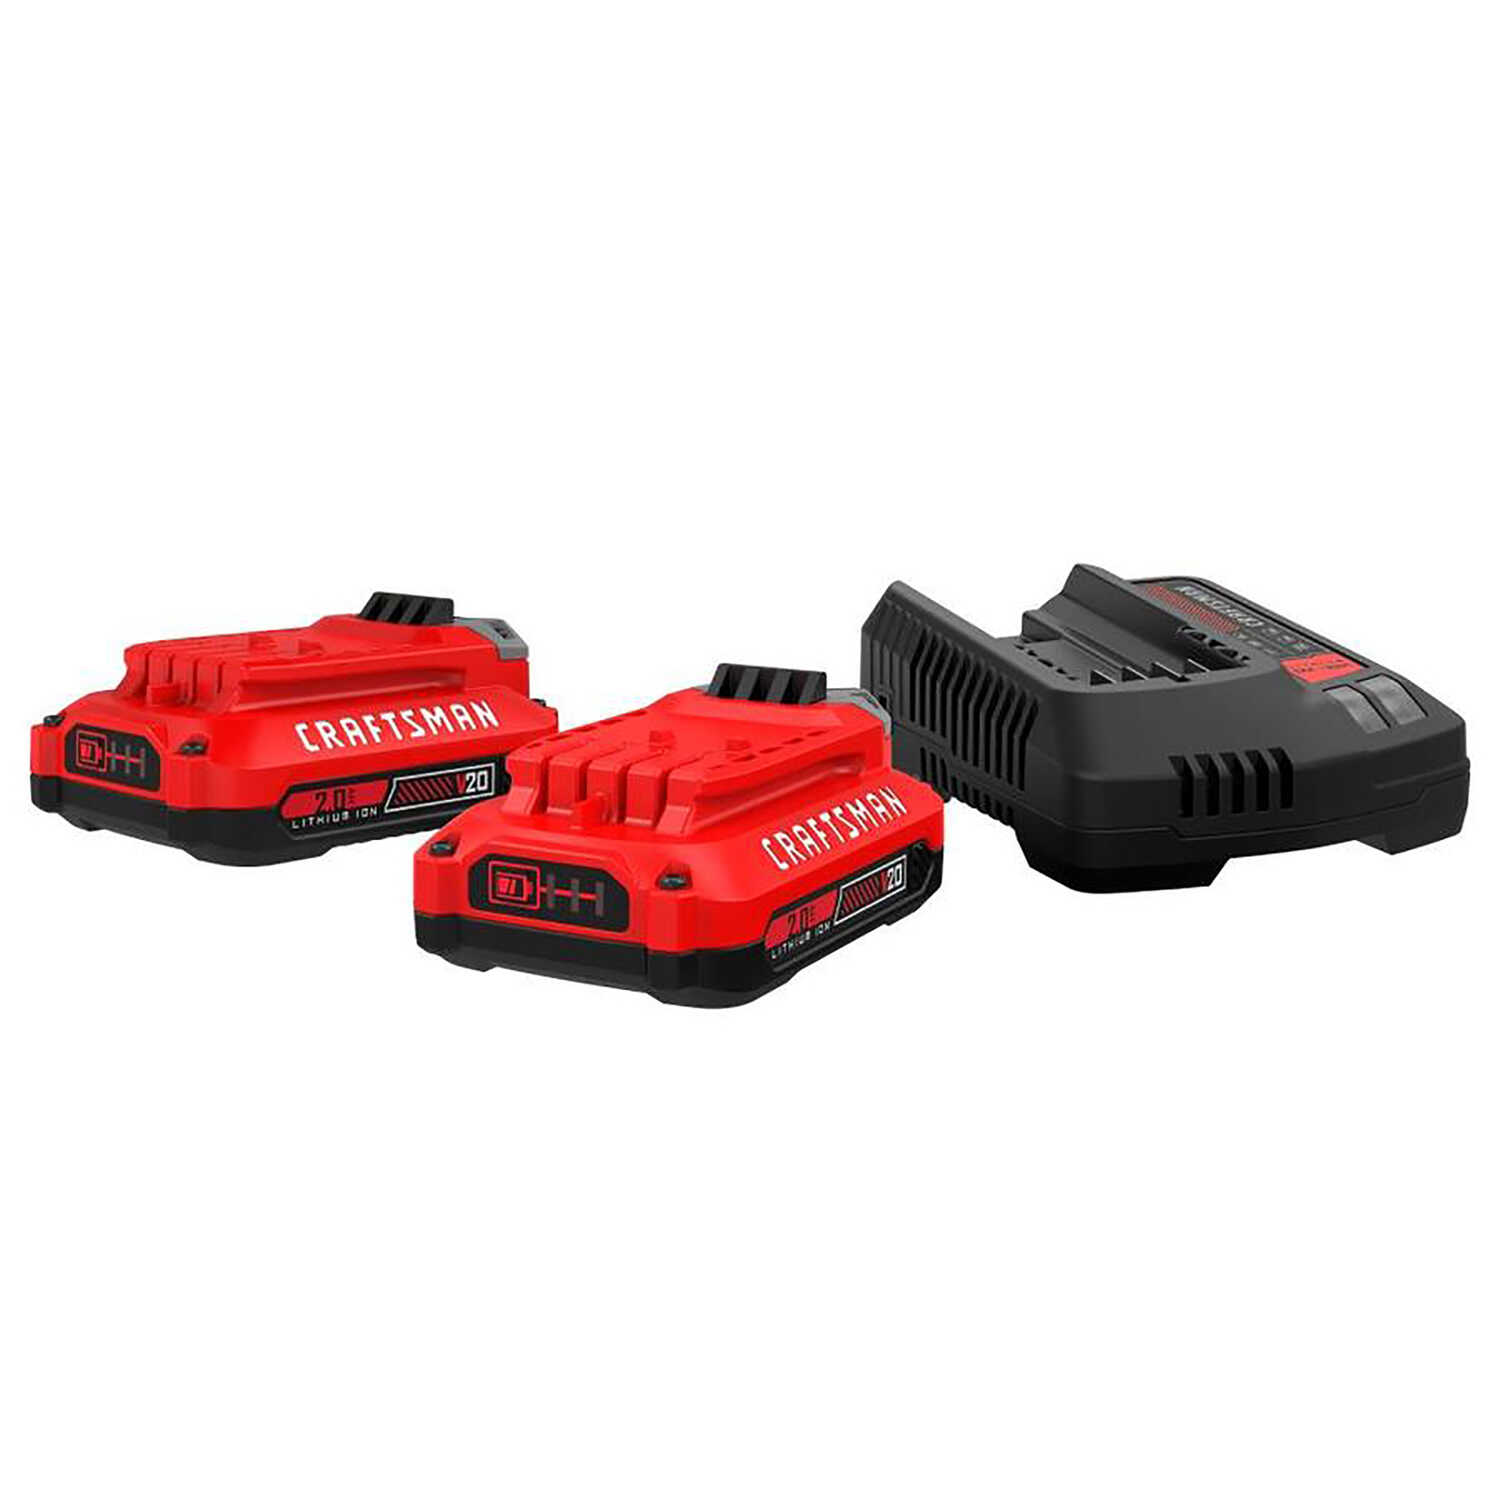 Craftsman  20V MAX  2 Ah Lithium-Ion  Battery and Charger Starter Kit  2 pc.